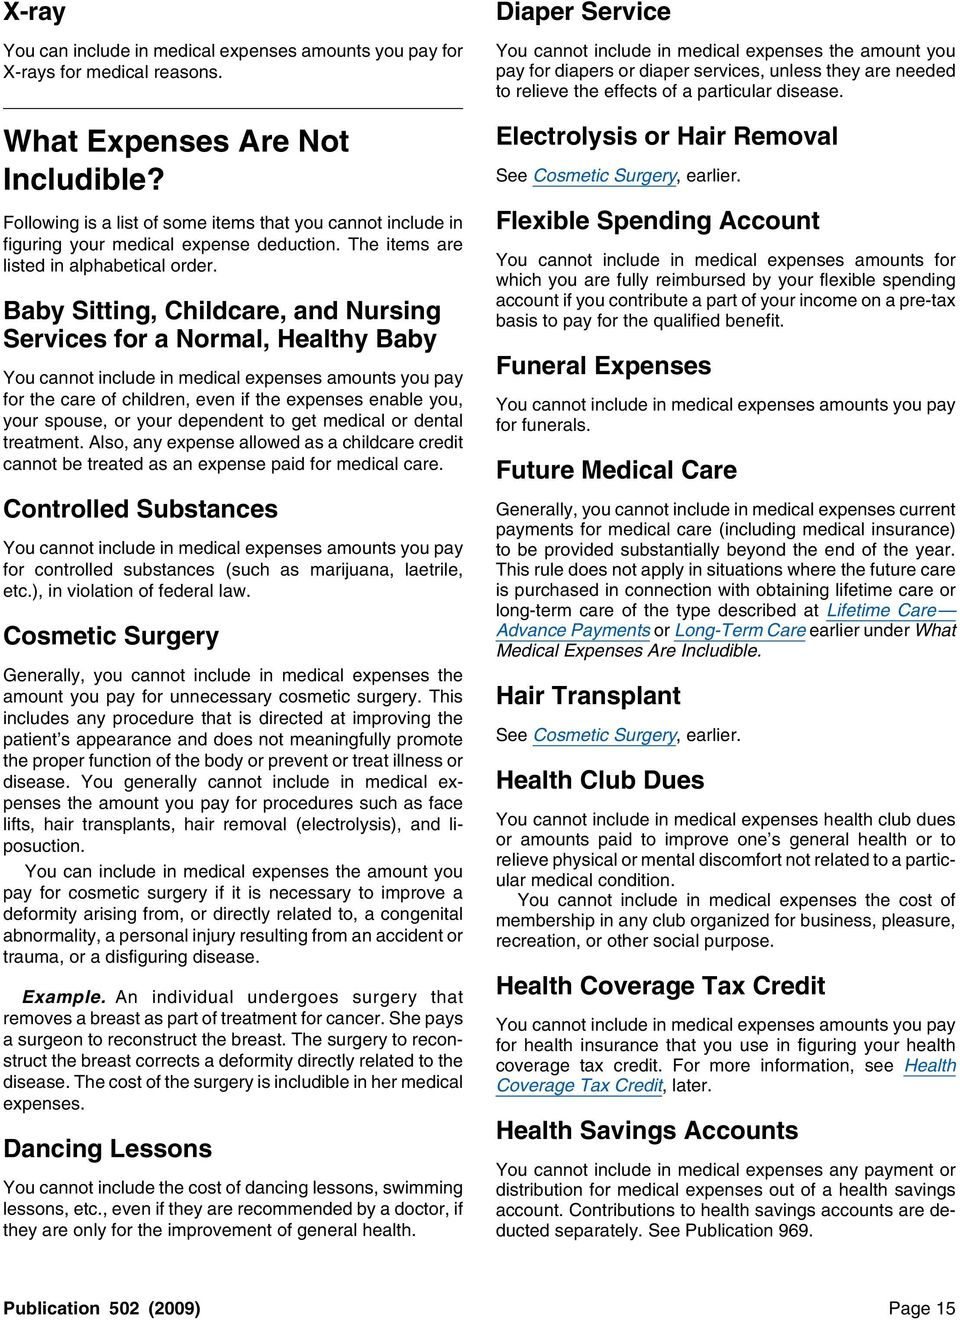 What Expenses Are Not Includible? Following is a list of some items that you cannot include in figuring your medical expense deduction. The items are listed in alphabetical order.